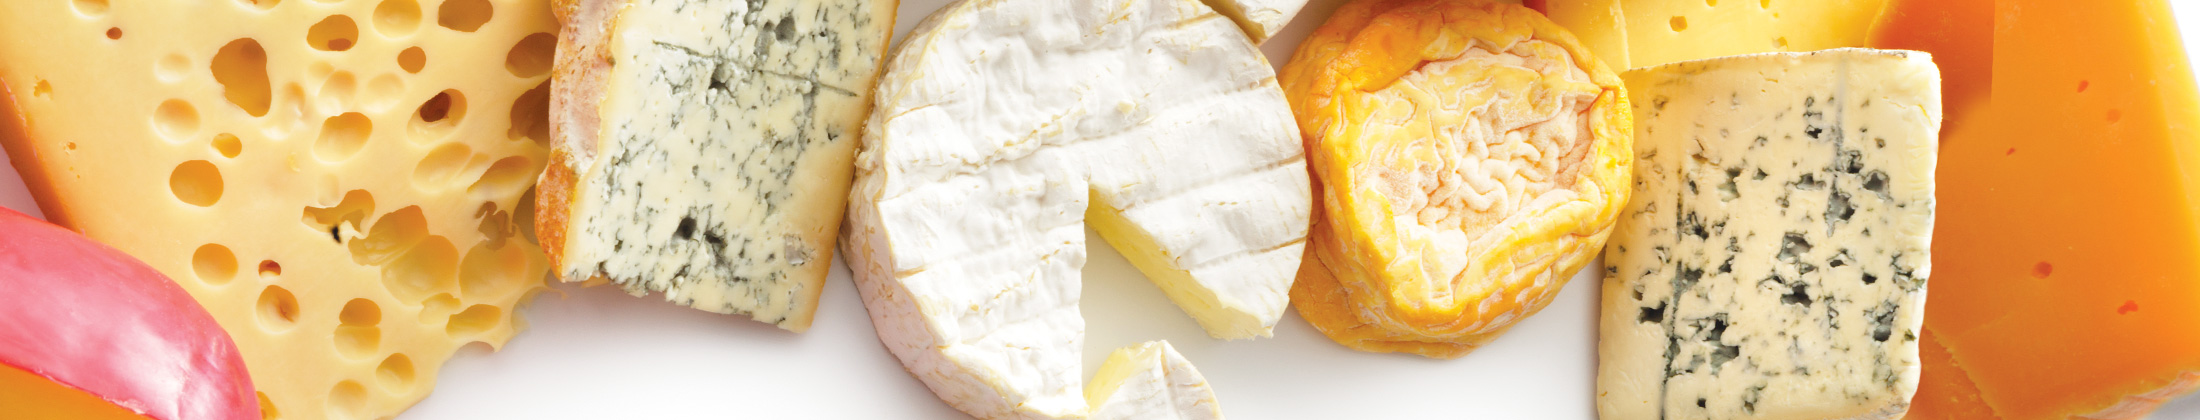 various types of cheeses across a plain colored background